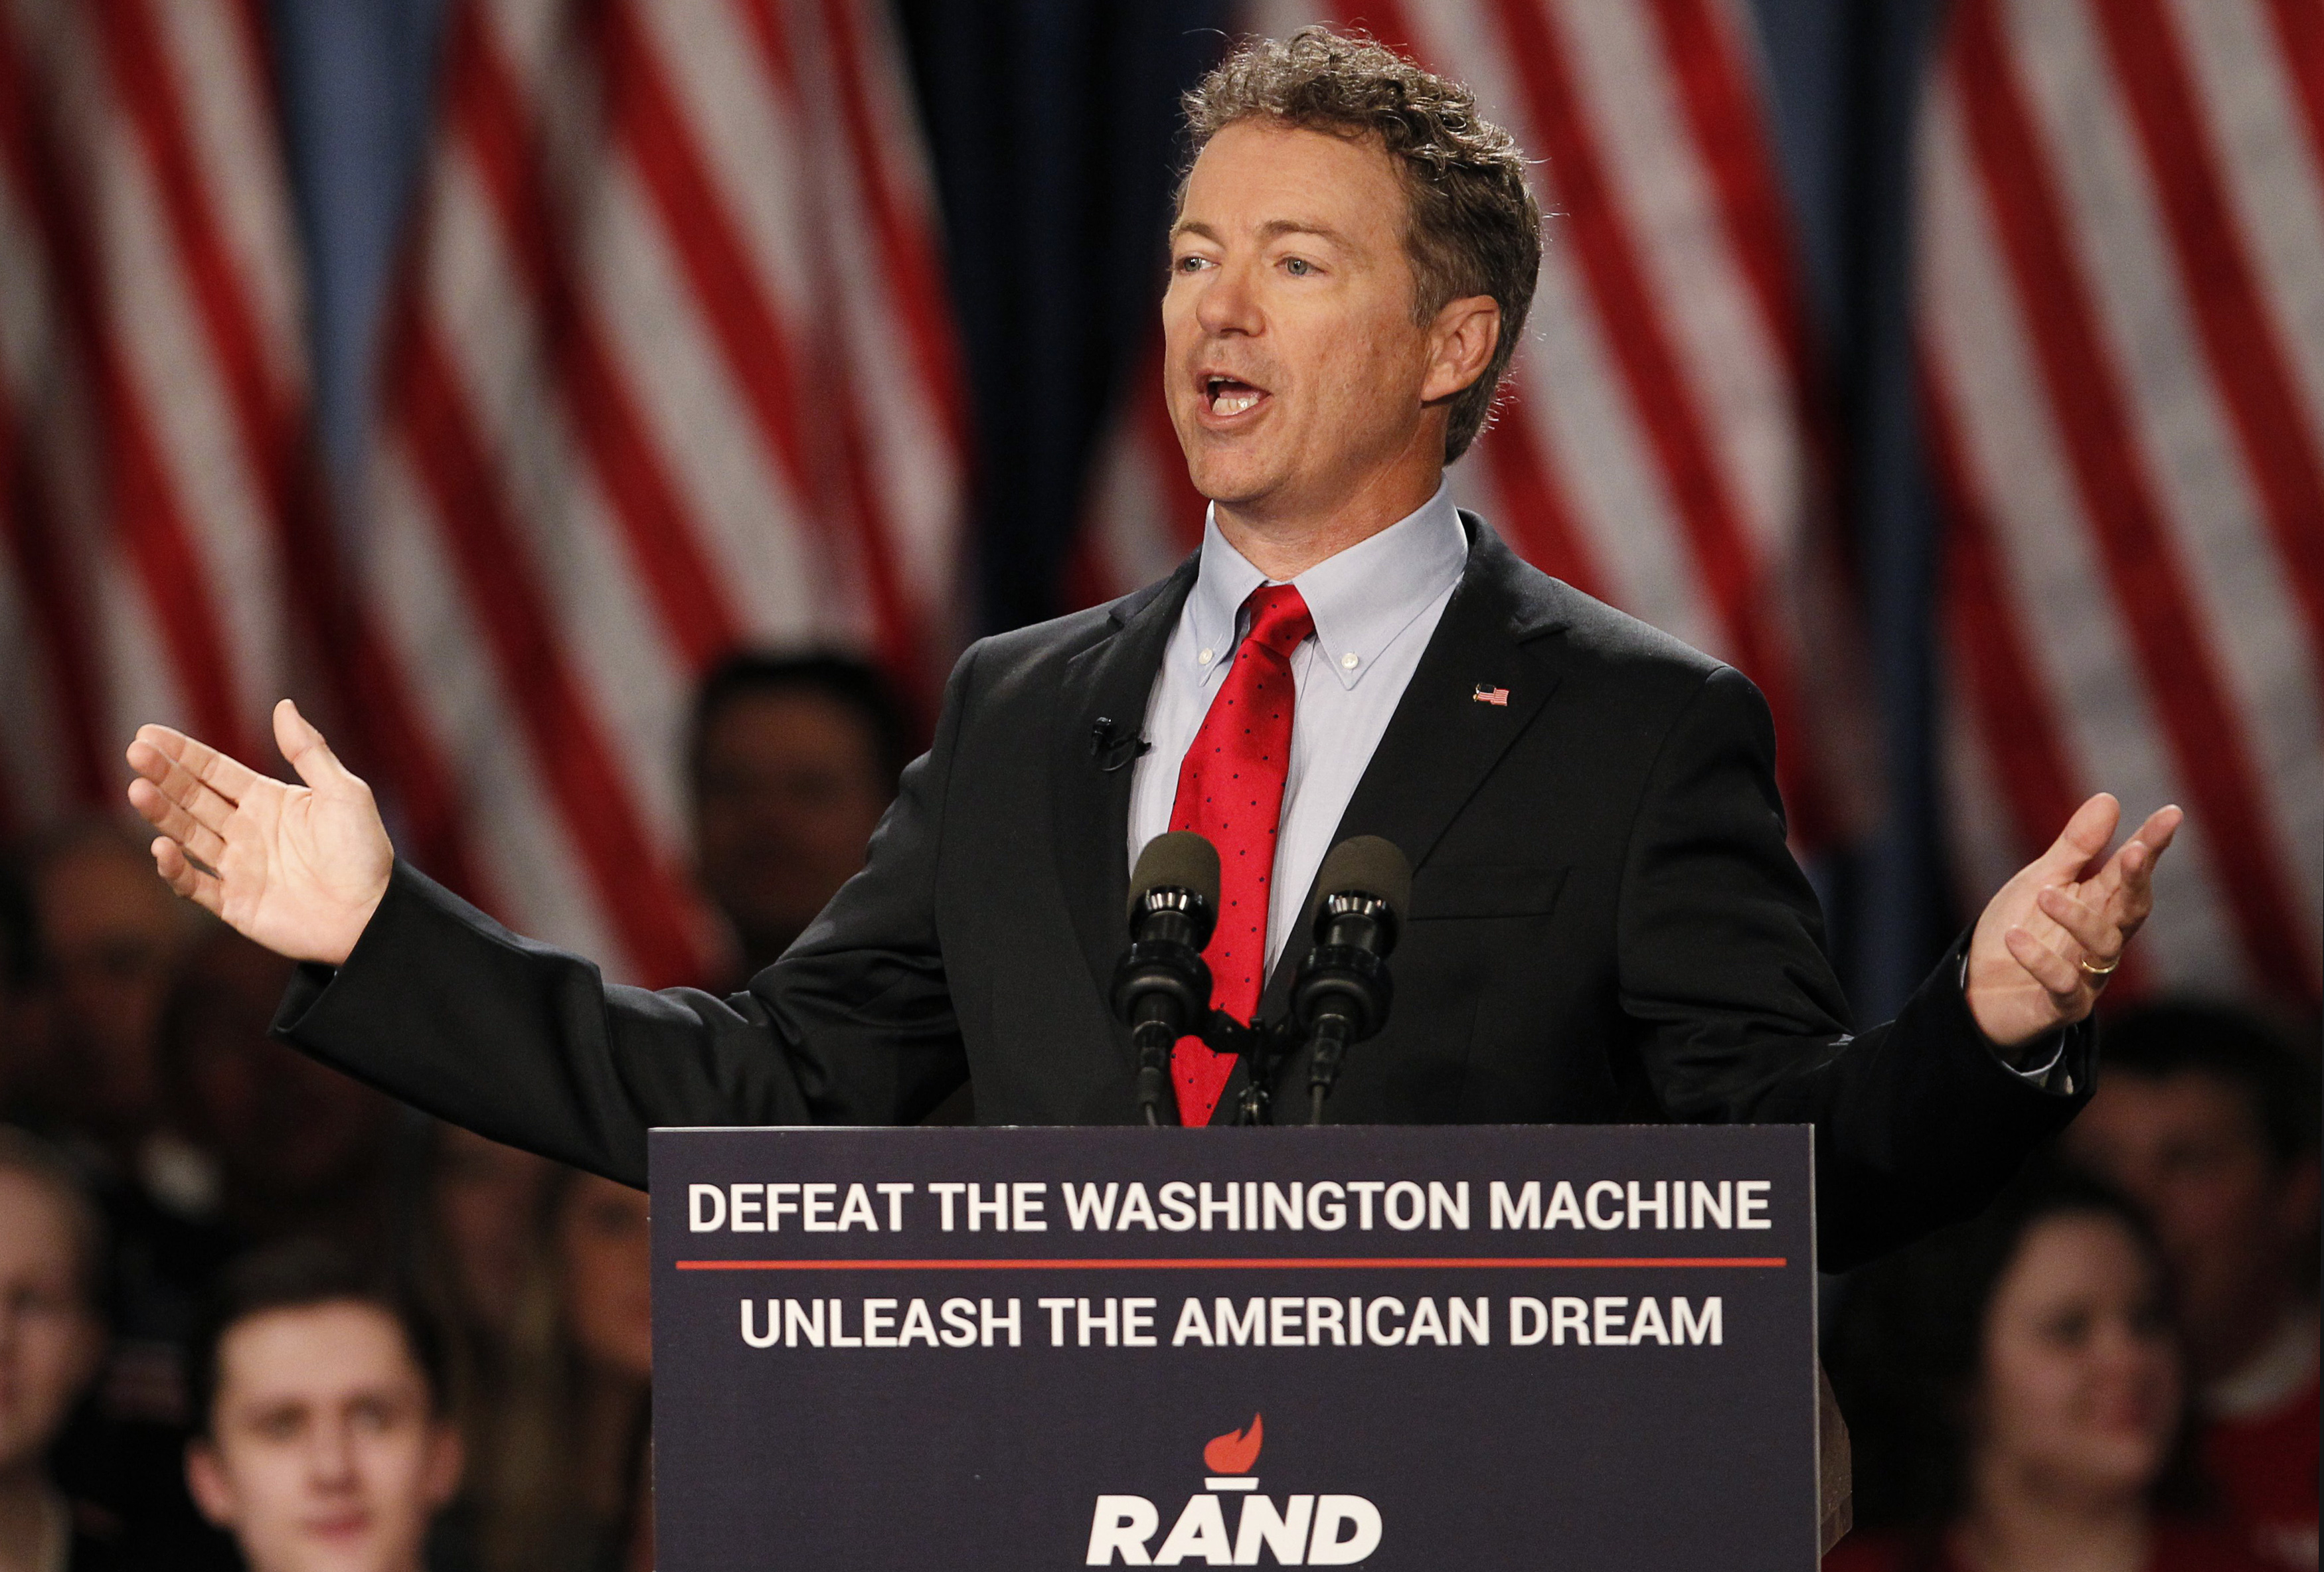 U.S. Senator Paul formally announces his candidacy for president during an event in Louisville